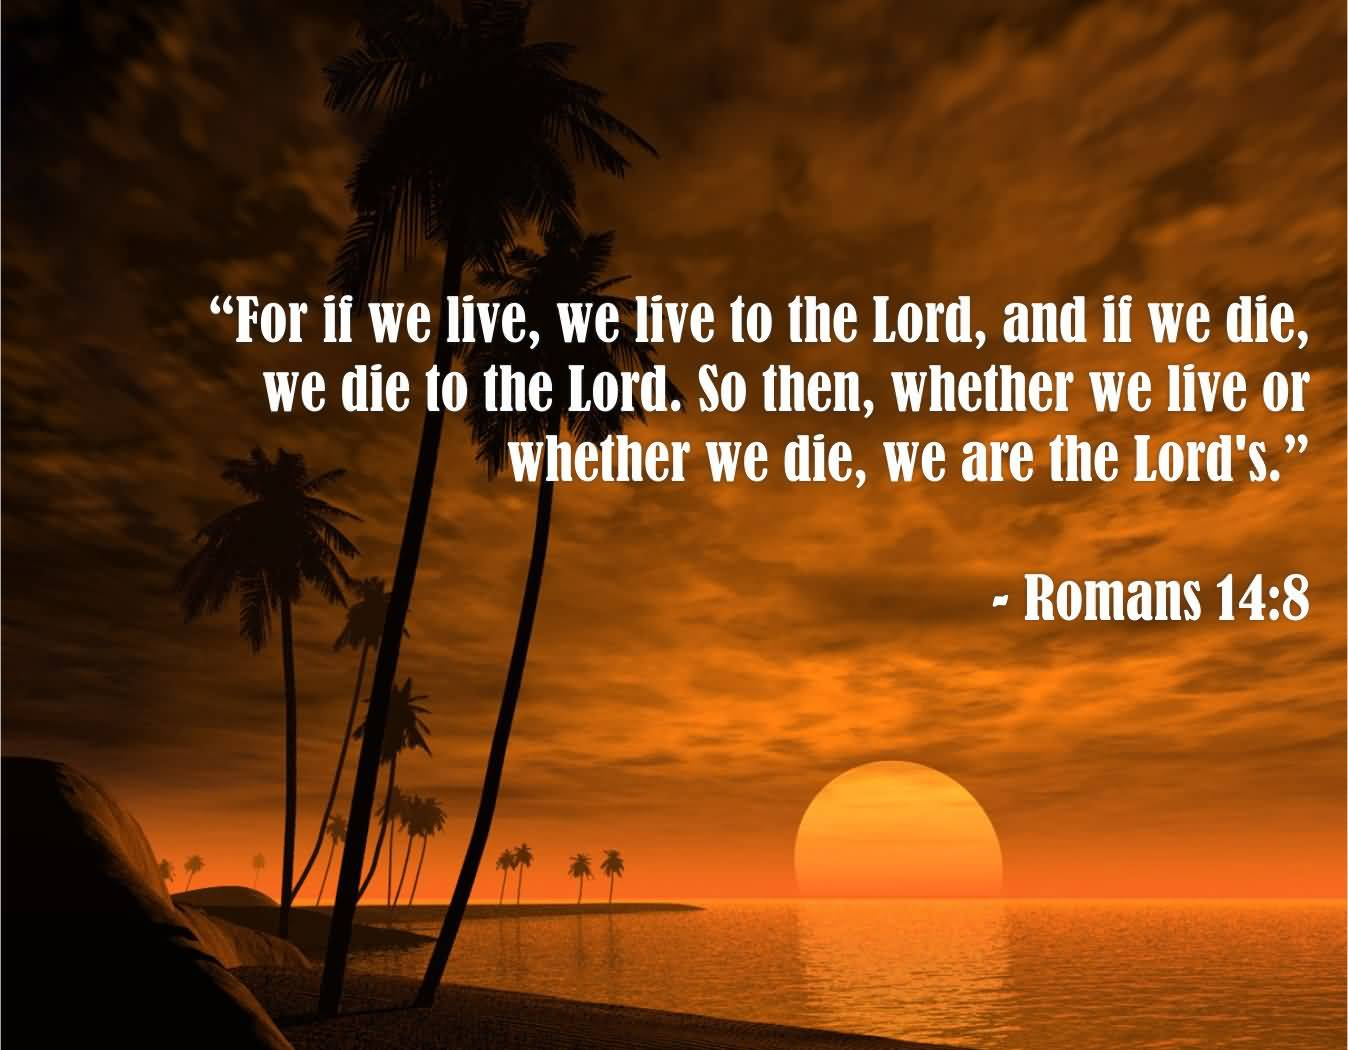 Quotes For Life And Death Quotes About Life And Death Bible 14  Quotesbae